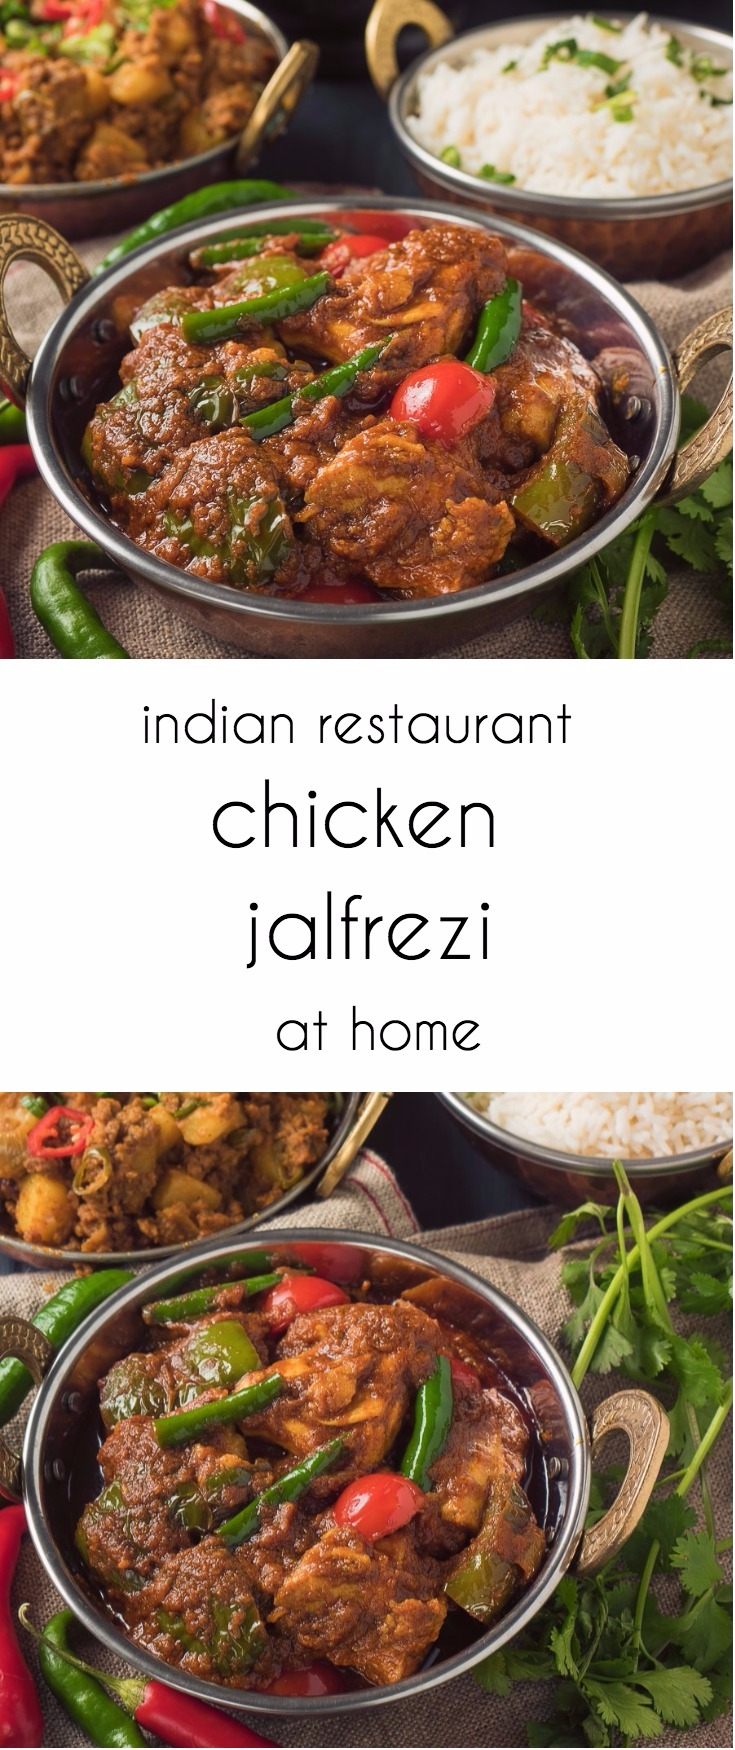 Indian restaurant chicken jalfrezi with rice and aloo keema